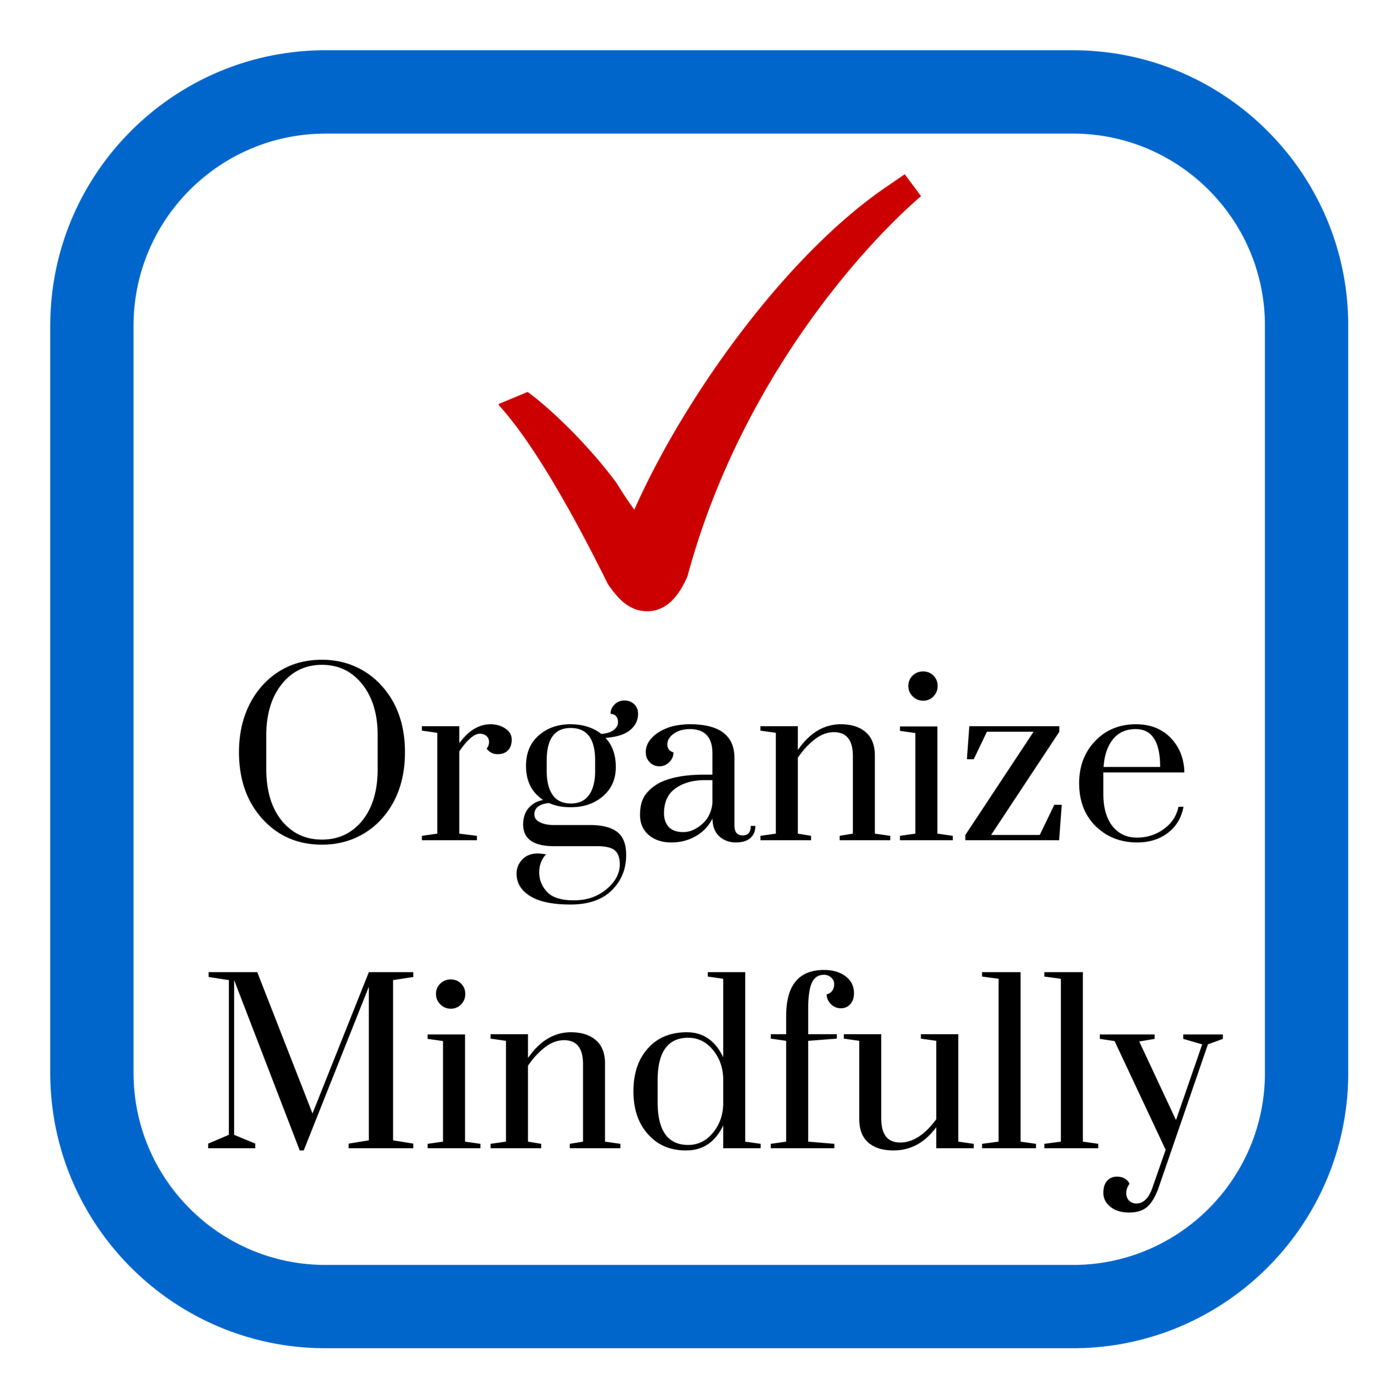 Organize Mindfully | Be inspired to bring organization into your life